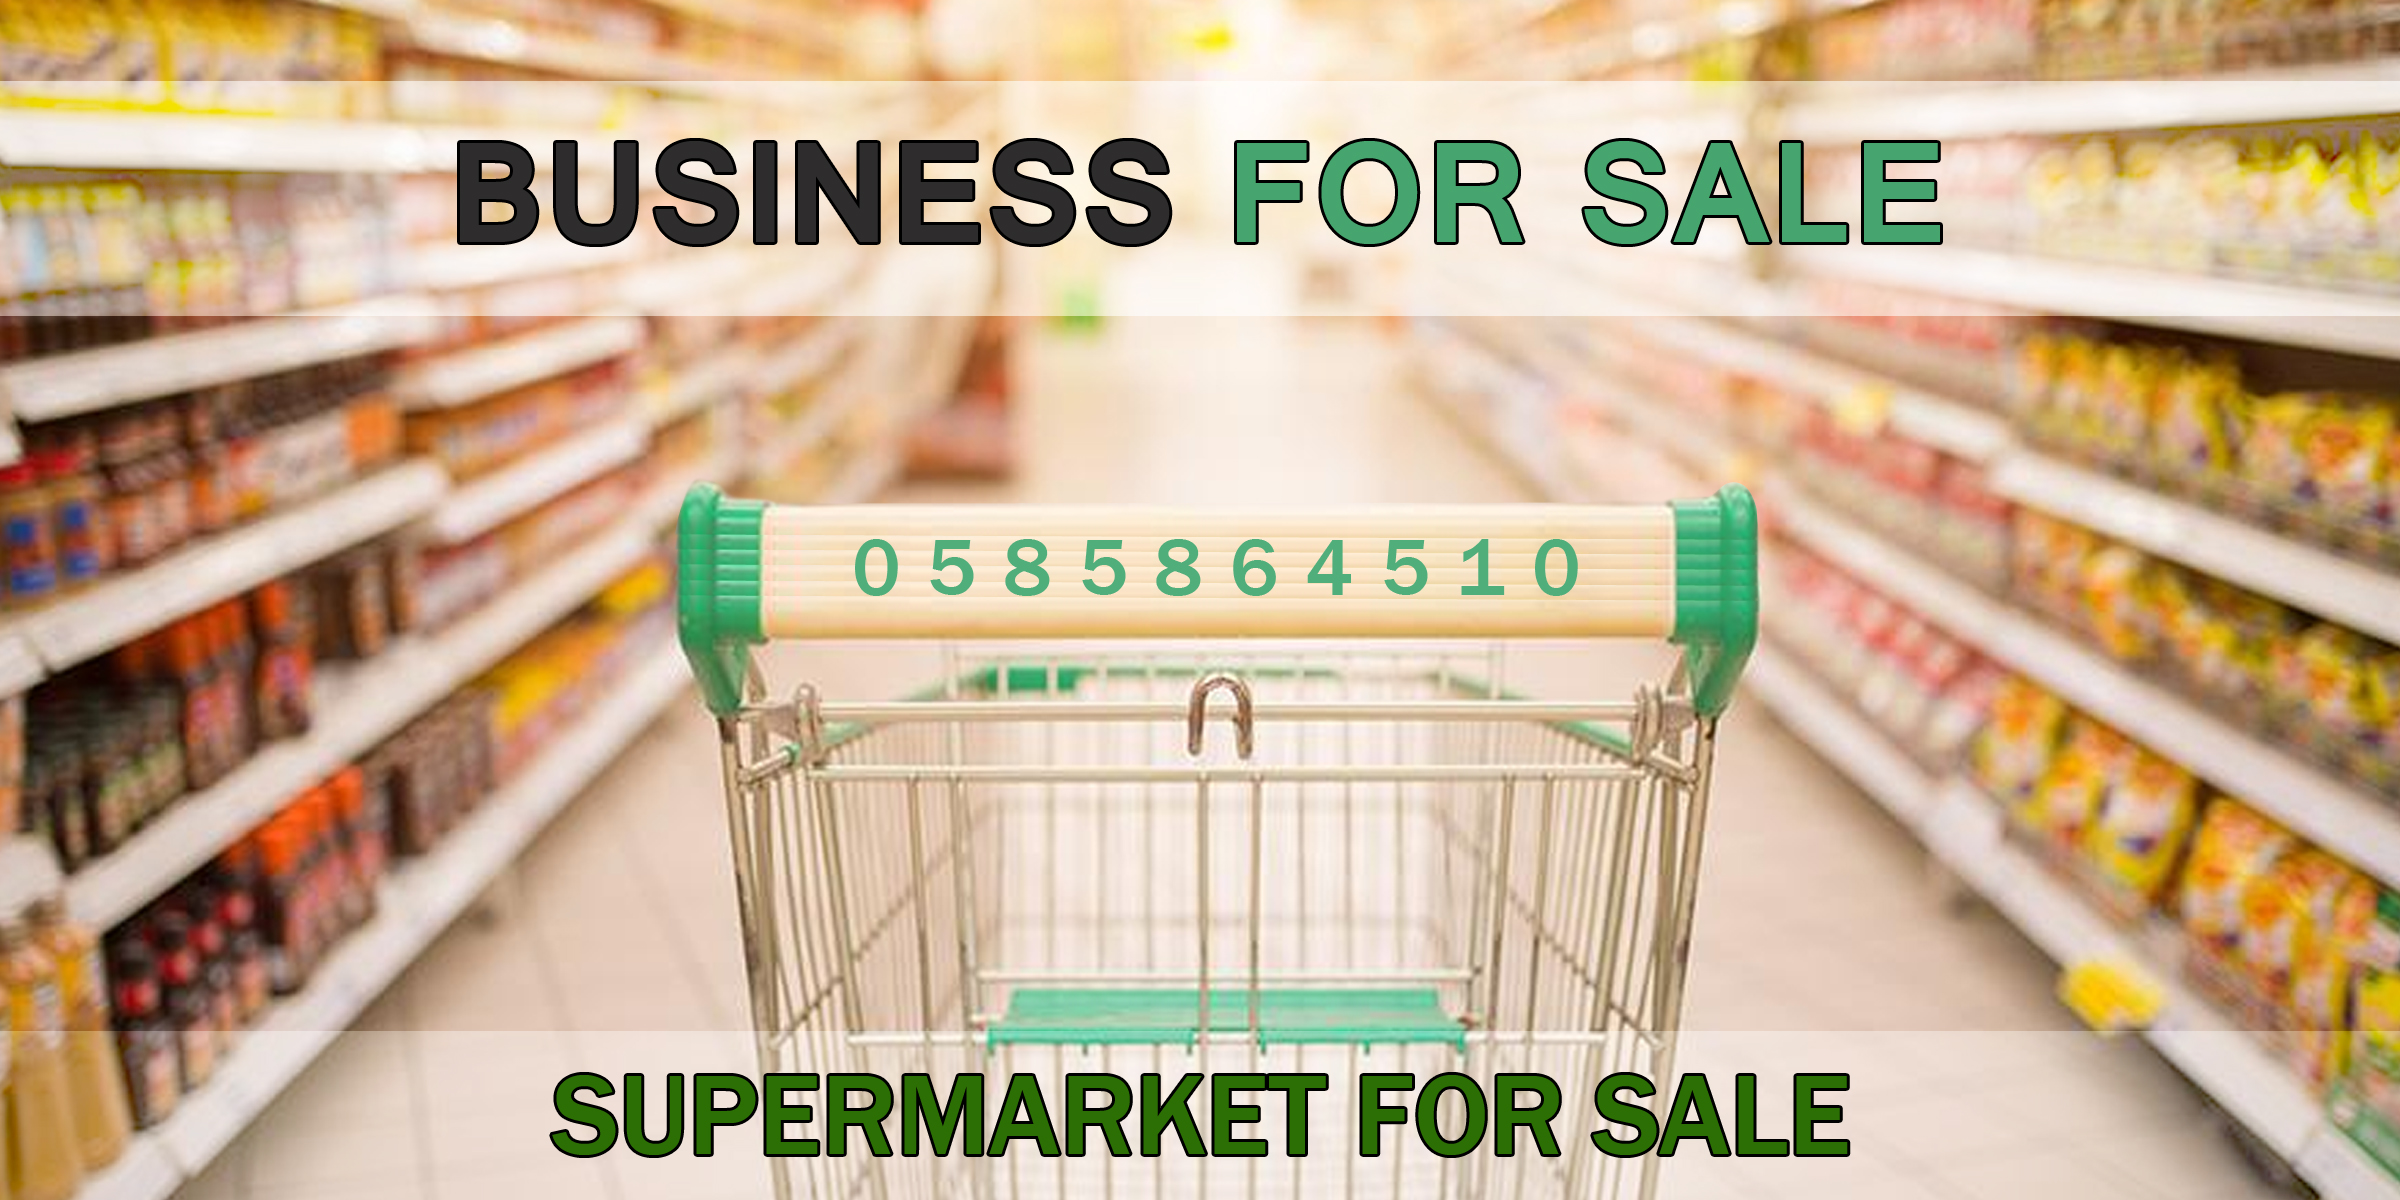 Supermarket for SALE in BUSINESS BAY